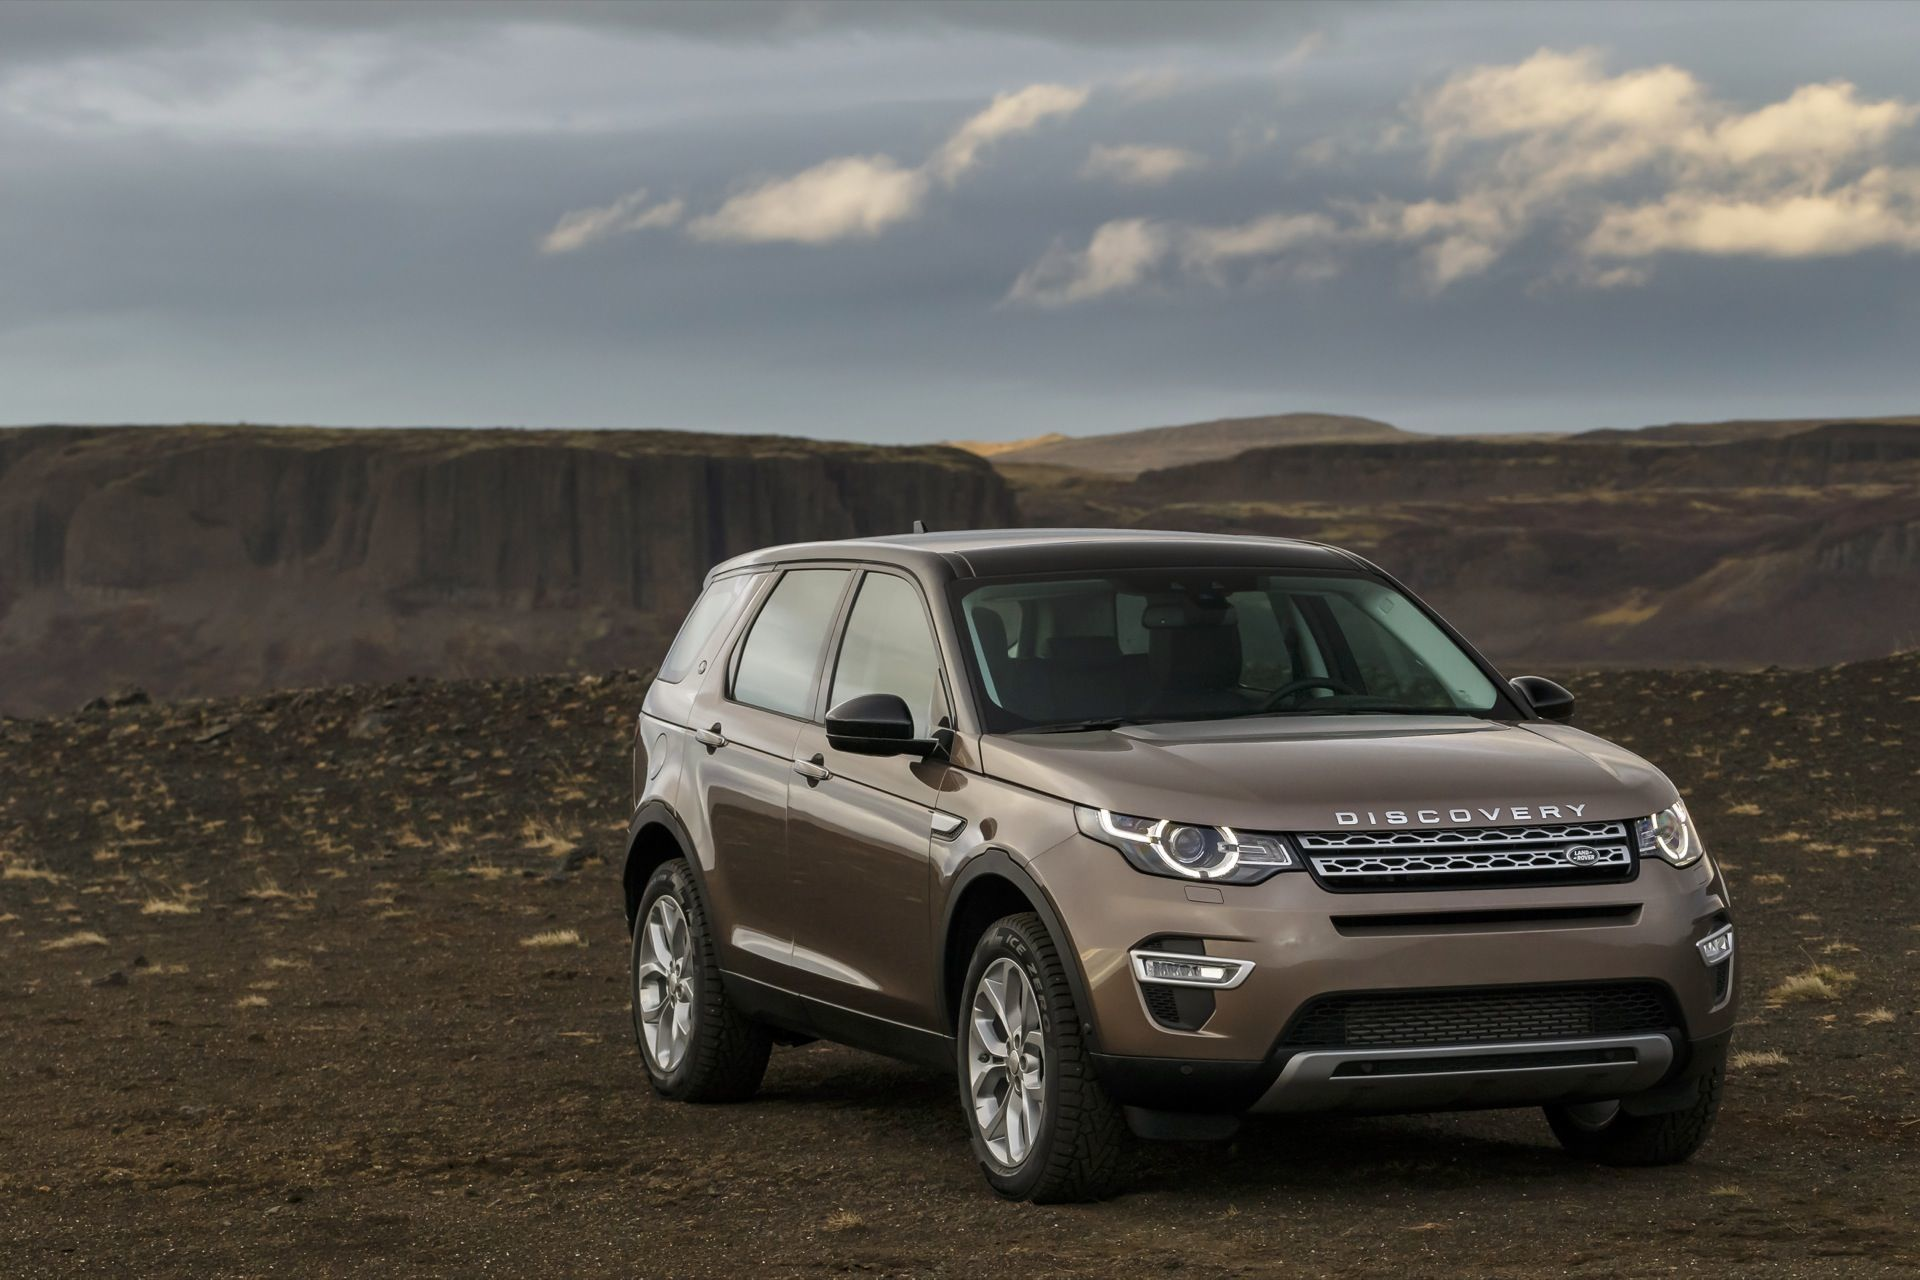 2016 Land Rover Discovery Sport Overview